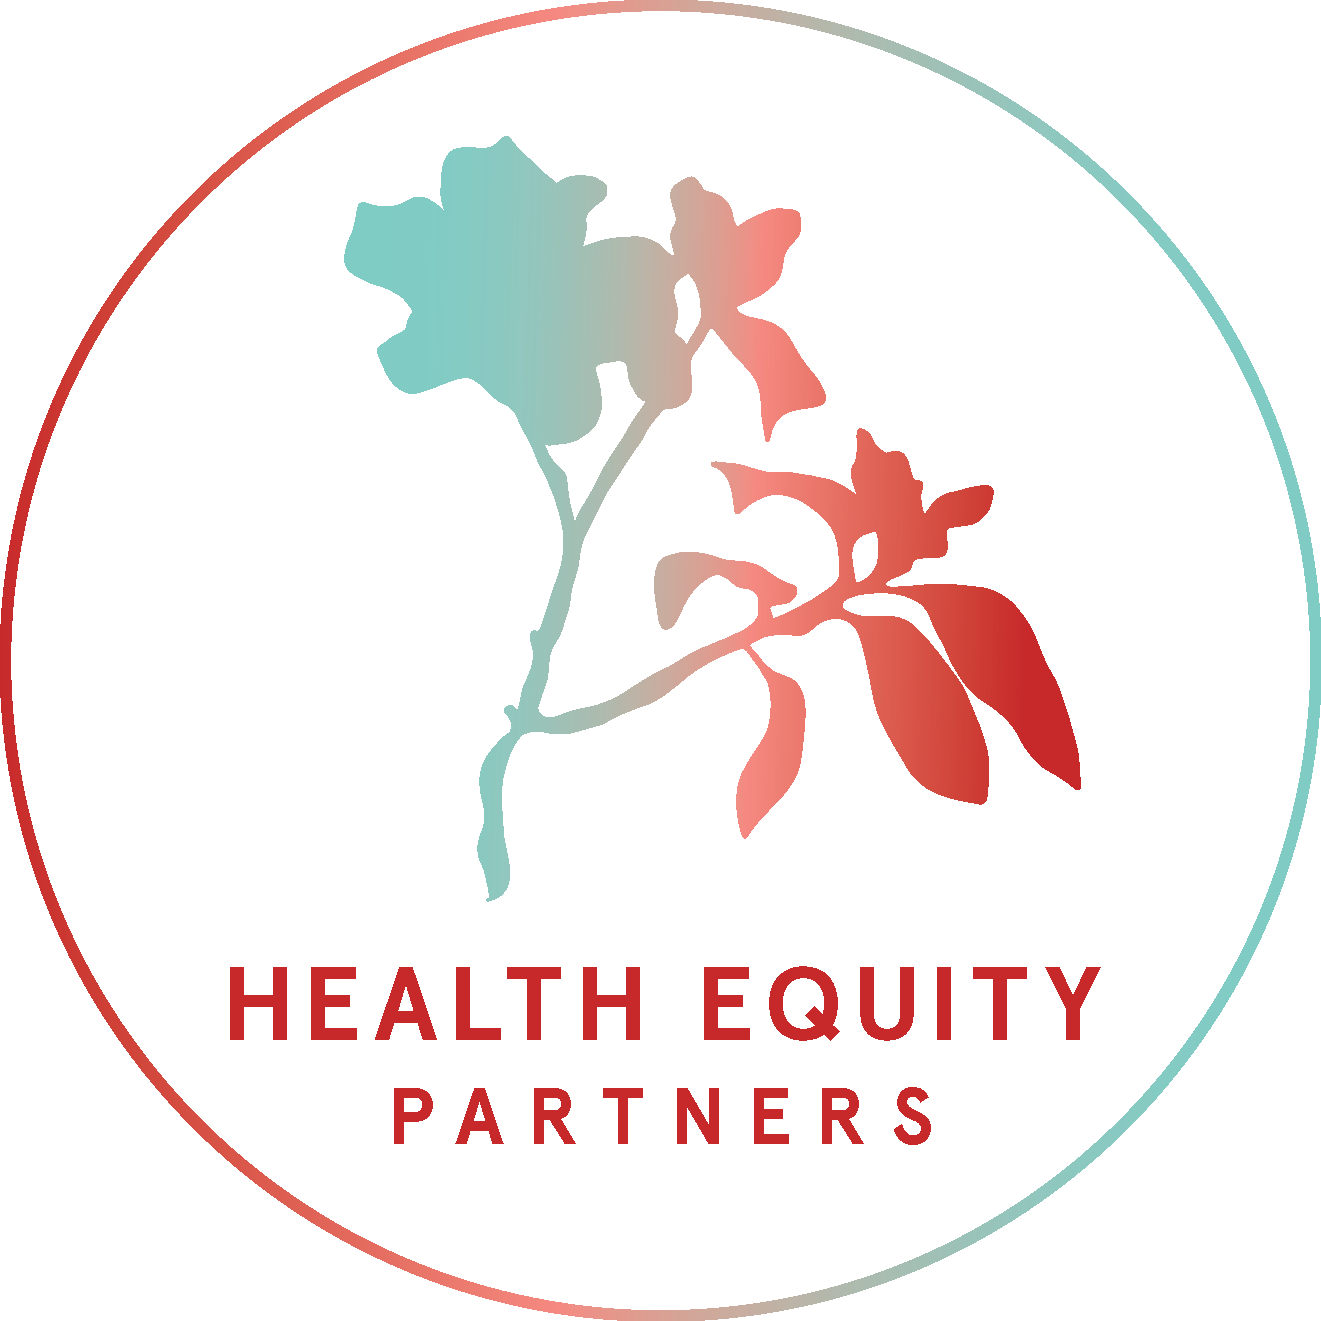 Health Equity Partners